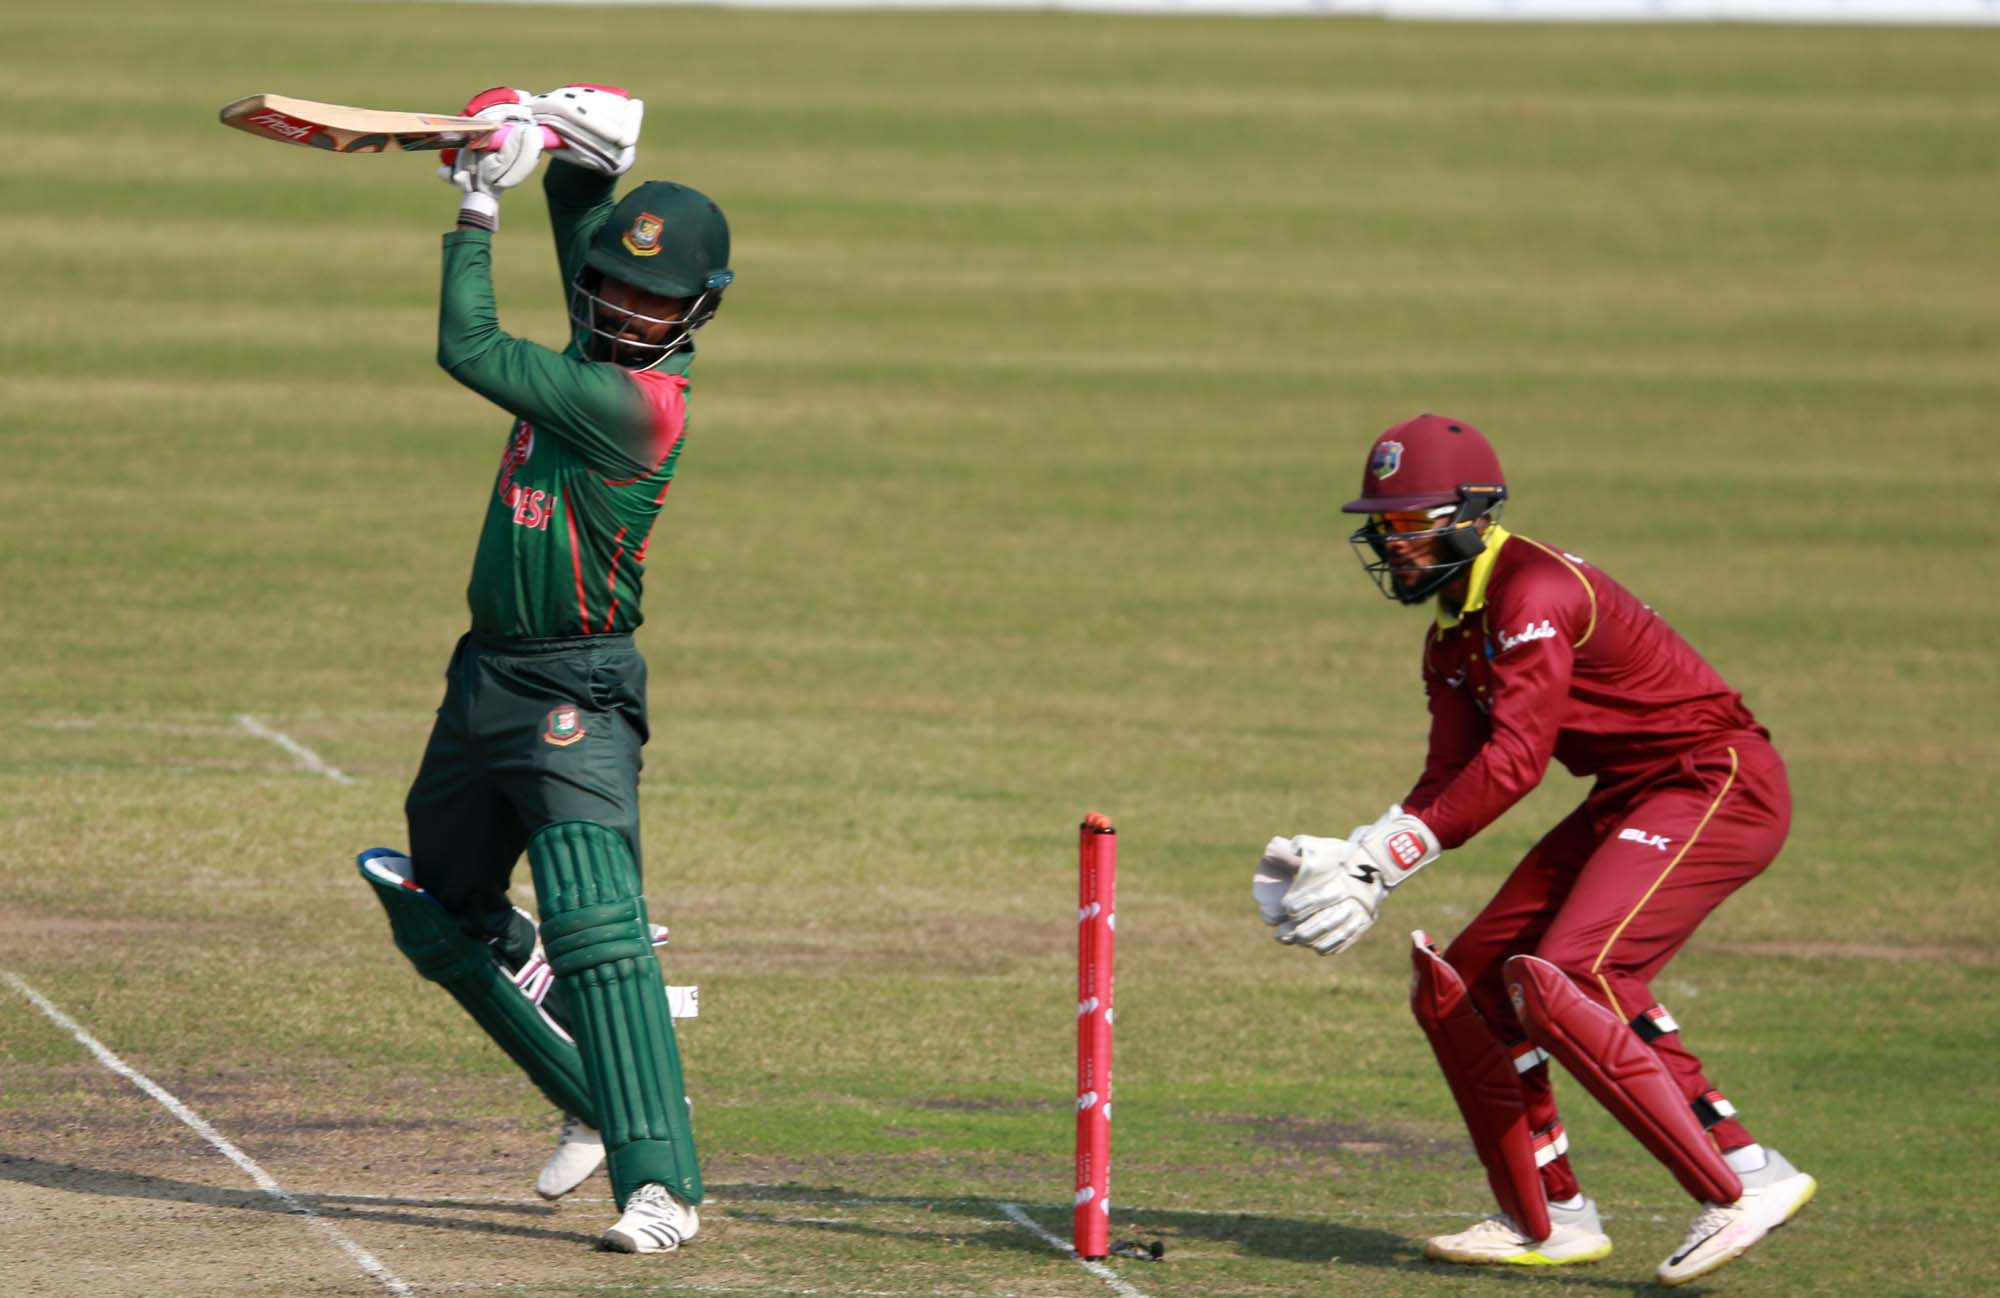 Opener Tamim Iqbal (left) of Bangladesh plays a shot during the second One Day International match between Bangladesh and West Indies at the Sher-e-Bangla National Cricket Stadium in the city's Mirpur on Tuesday.